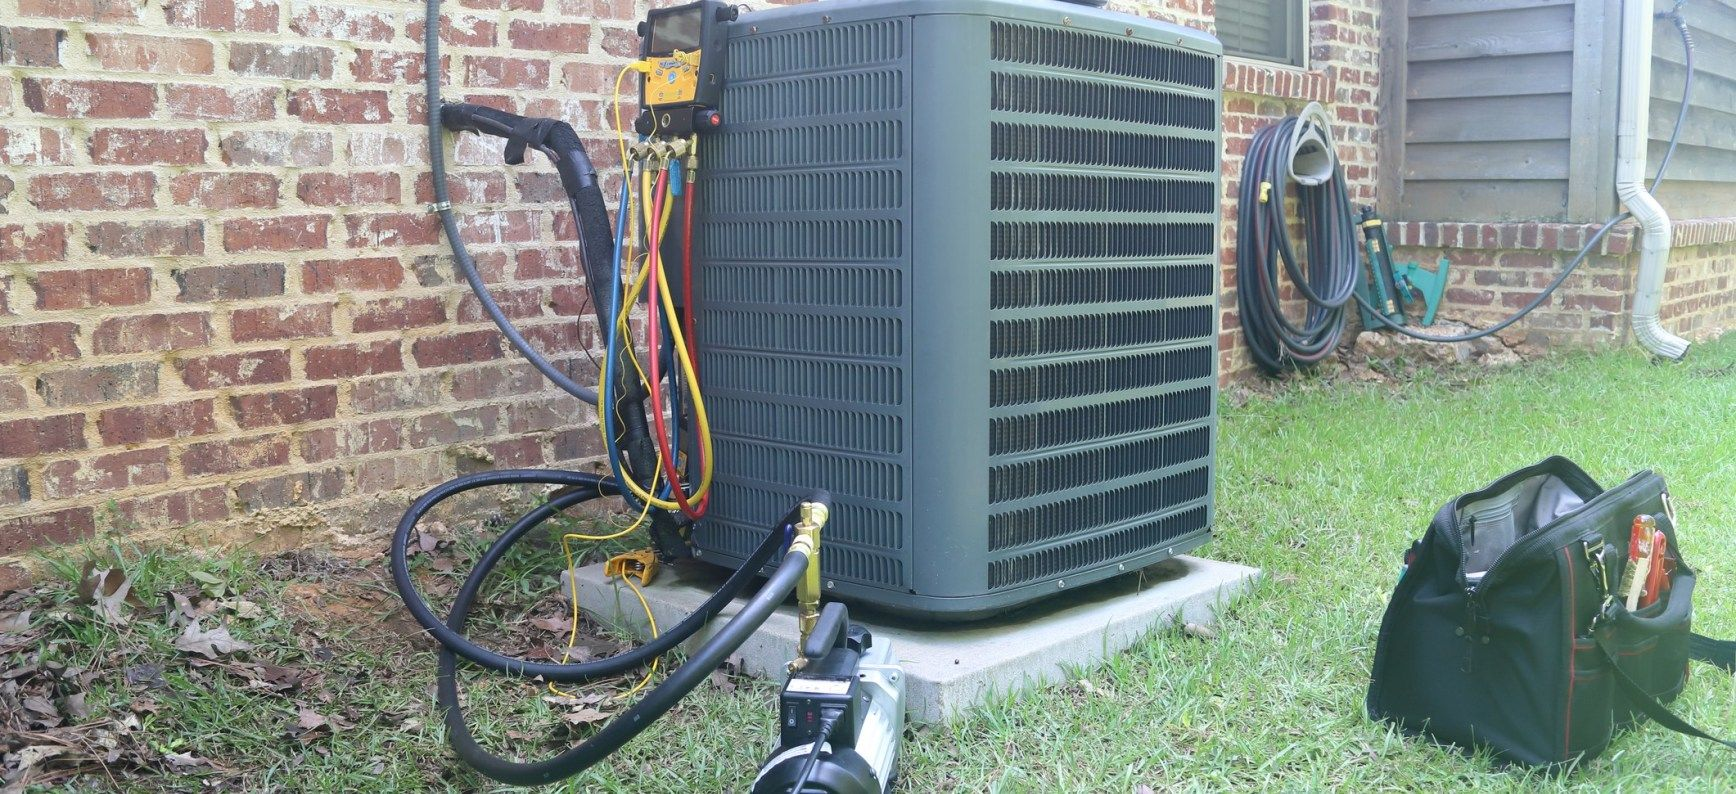 Should I replace or repair my broken air conditioning